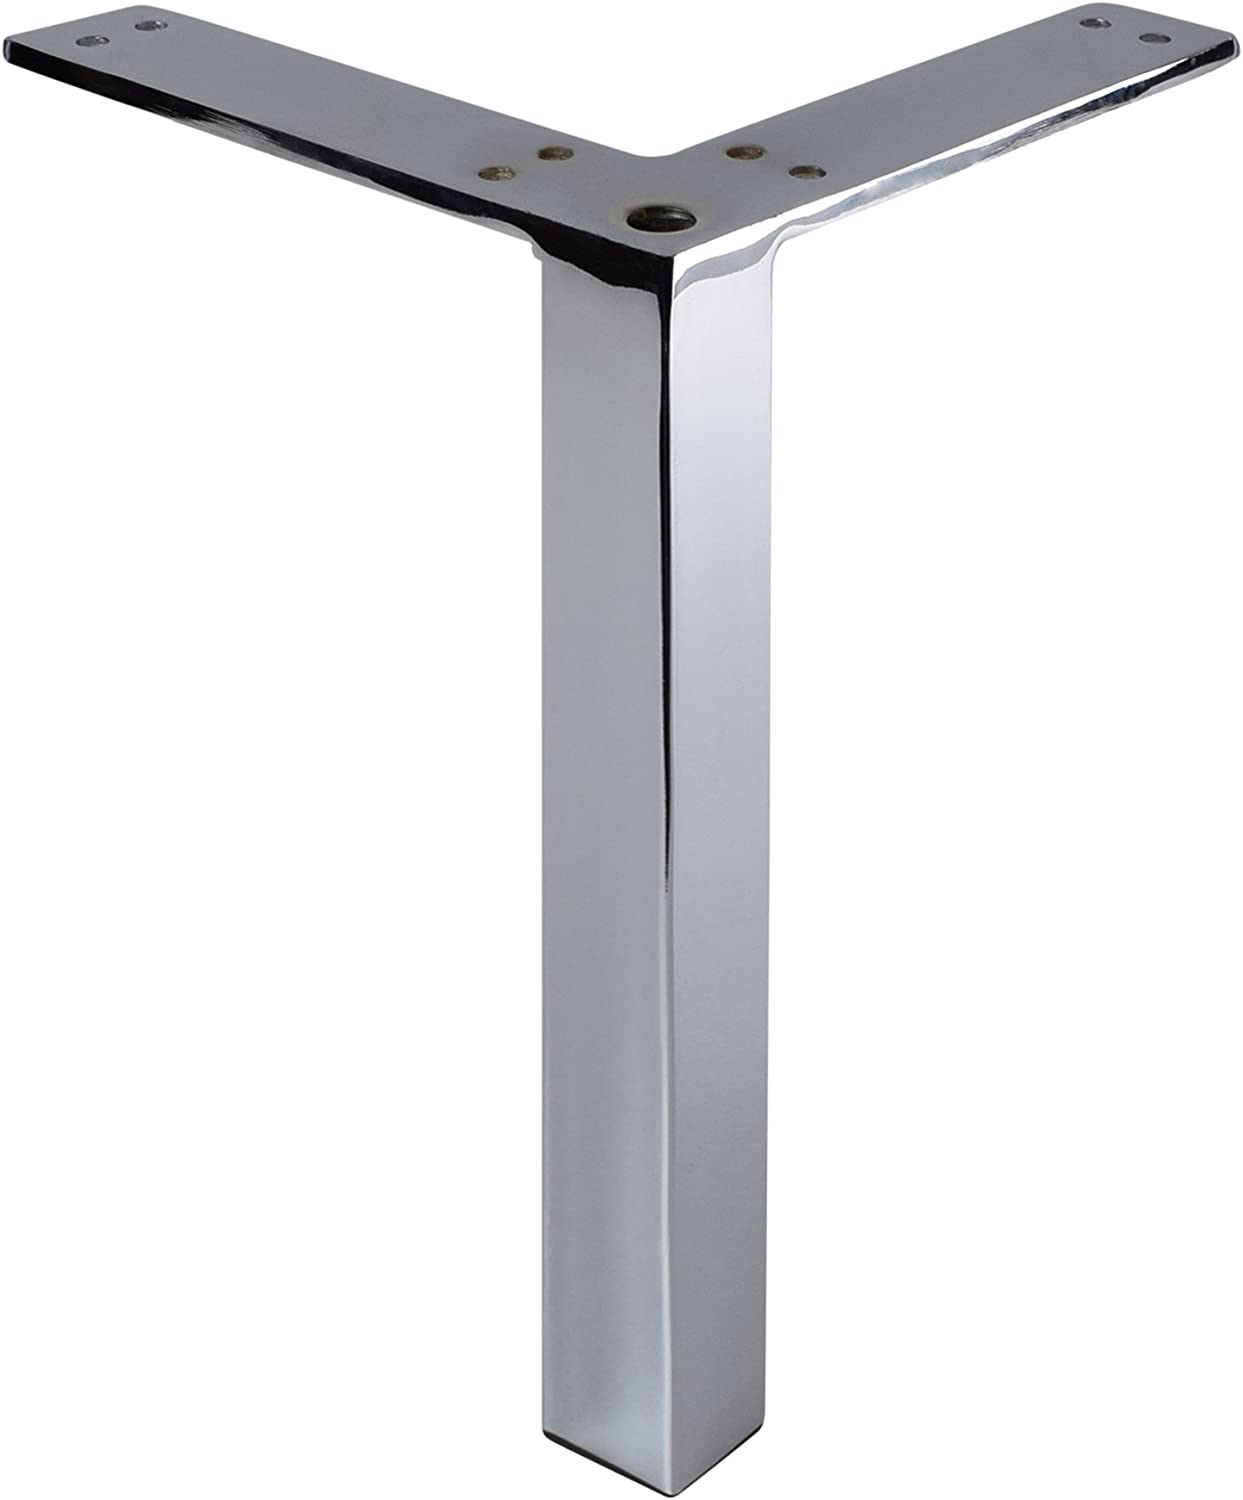 FREE P/&P NEW CHROME METAL FURNITURE FEET LEGS AVAILABLE IN 6 VARIOUS DESIGNS